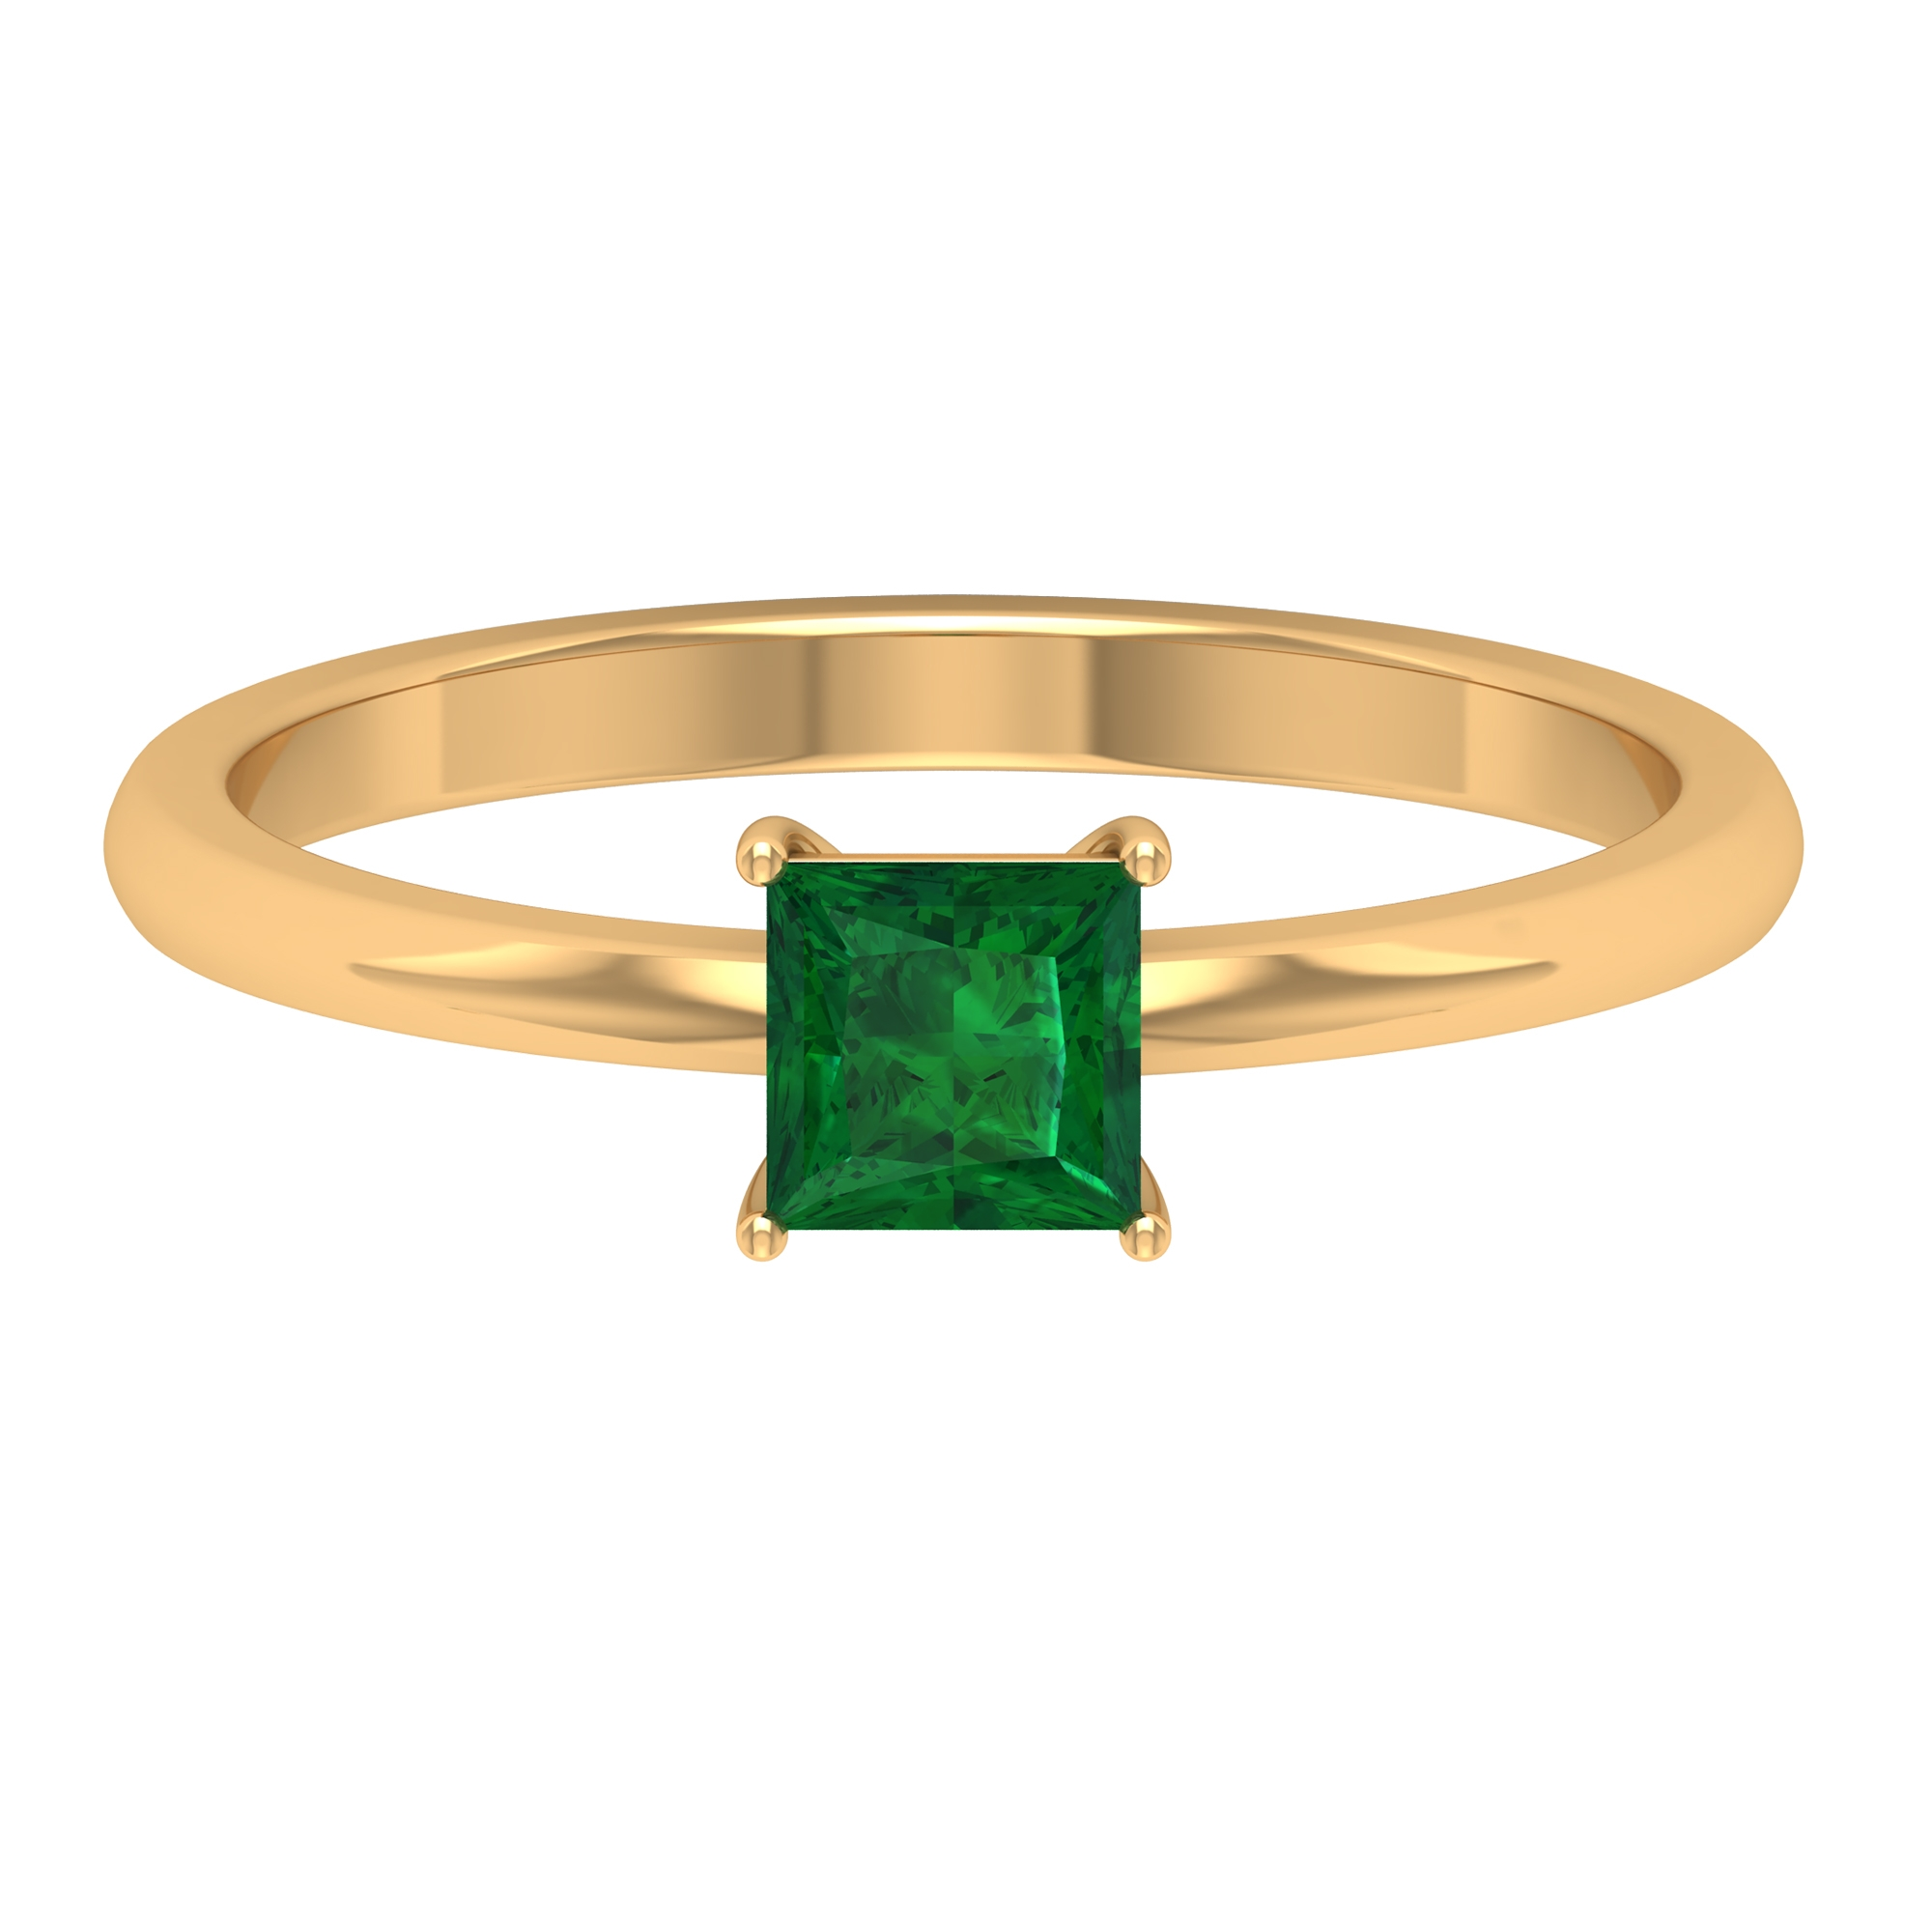 4.5 MM Princess Cut Emerald Solitaire Ring in 4 Prong Setting